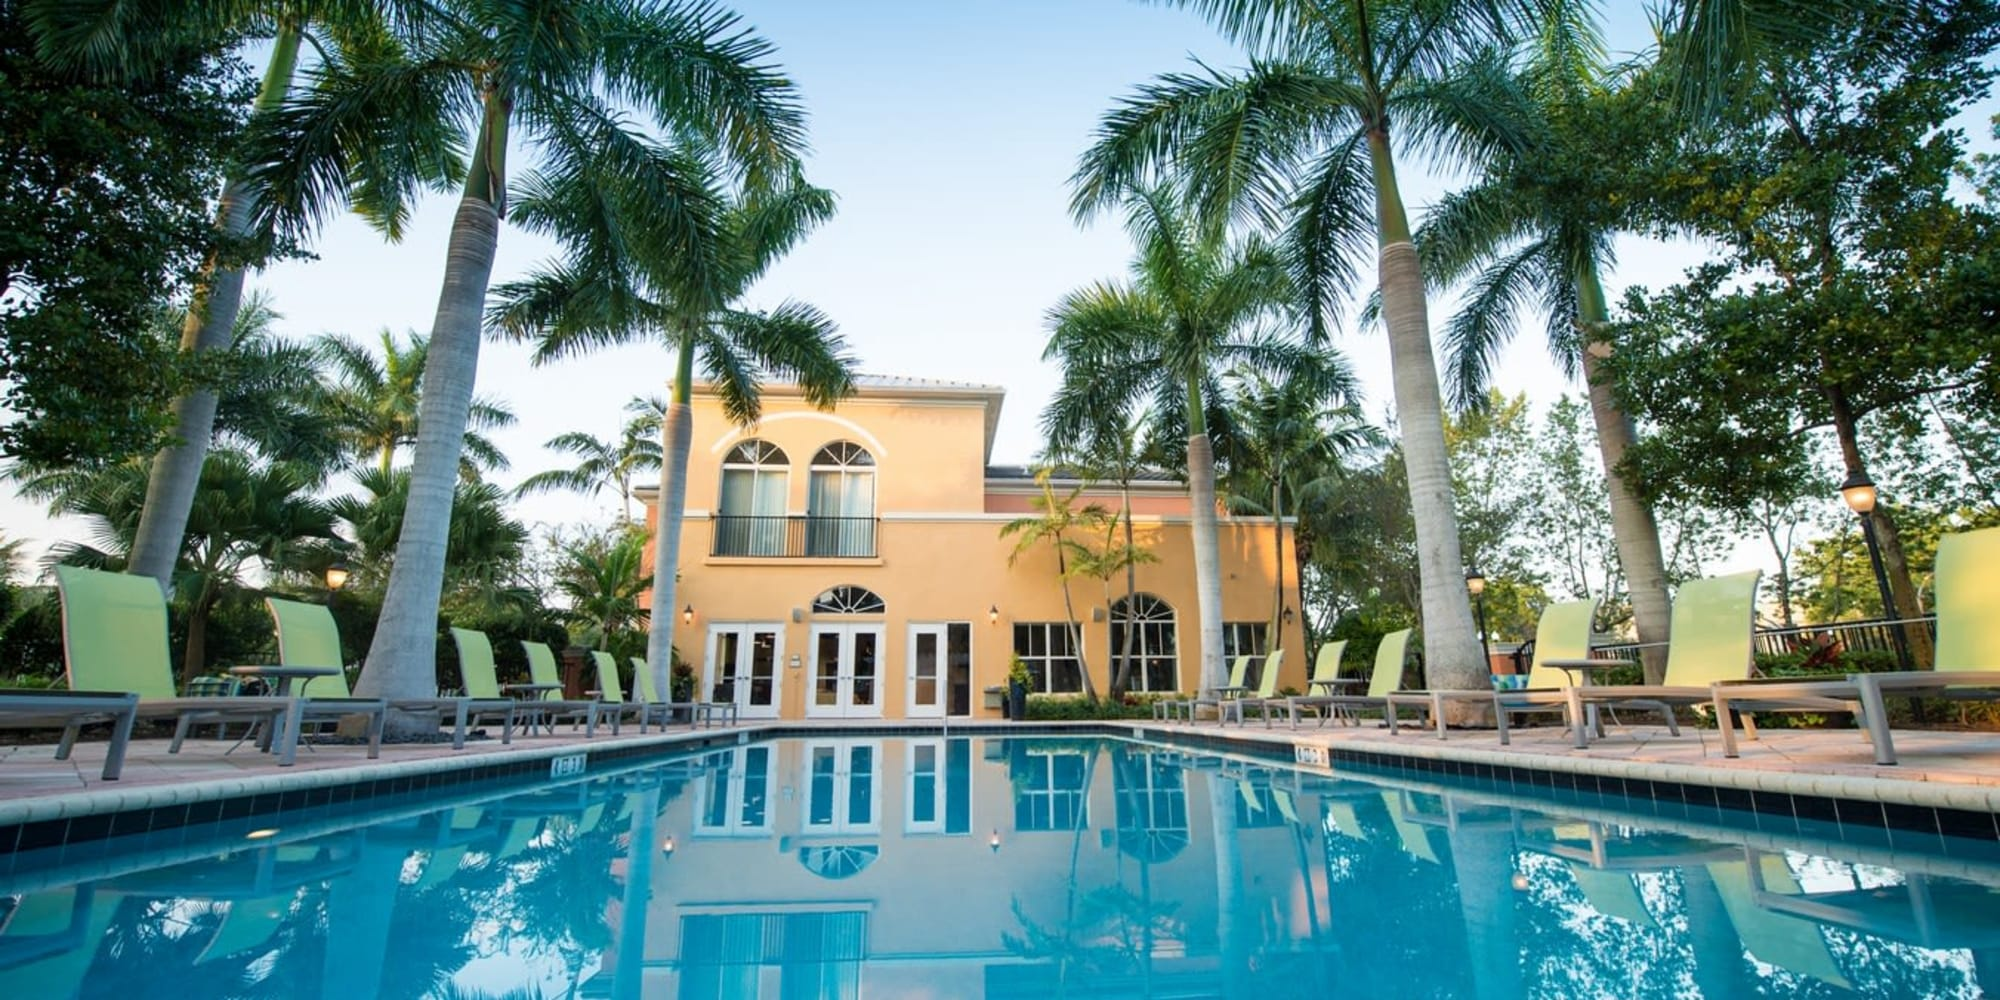 Resort style swimming pool surrounded by palm trees at The Pearl in Ft Lauderdale, Florida